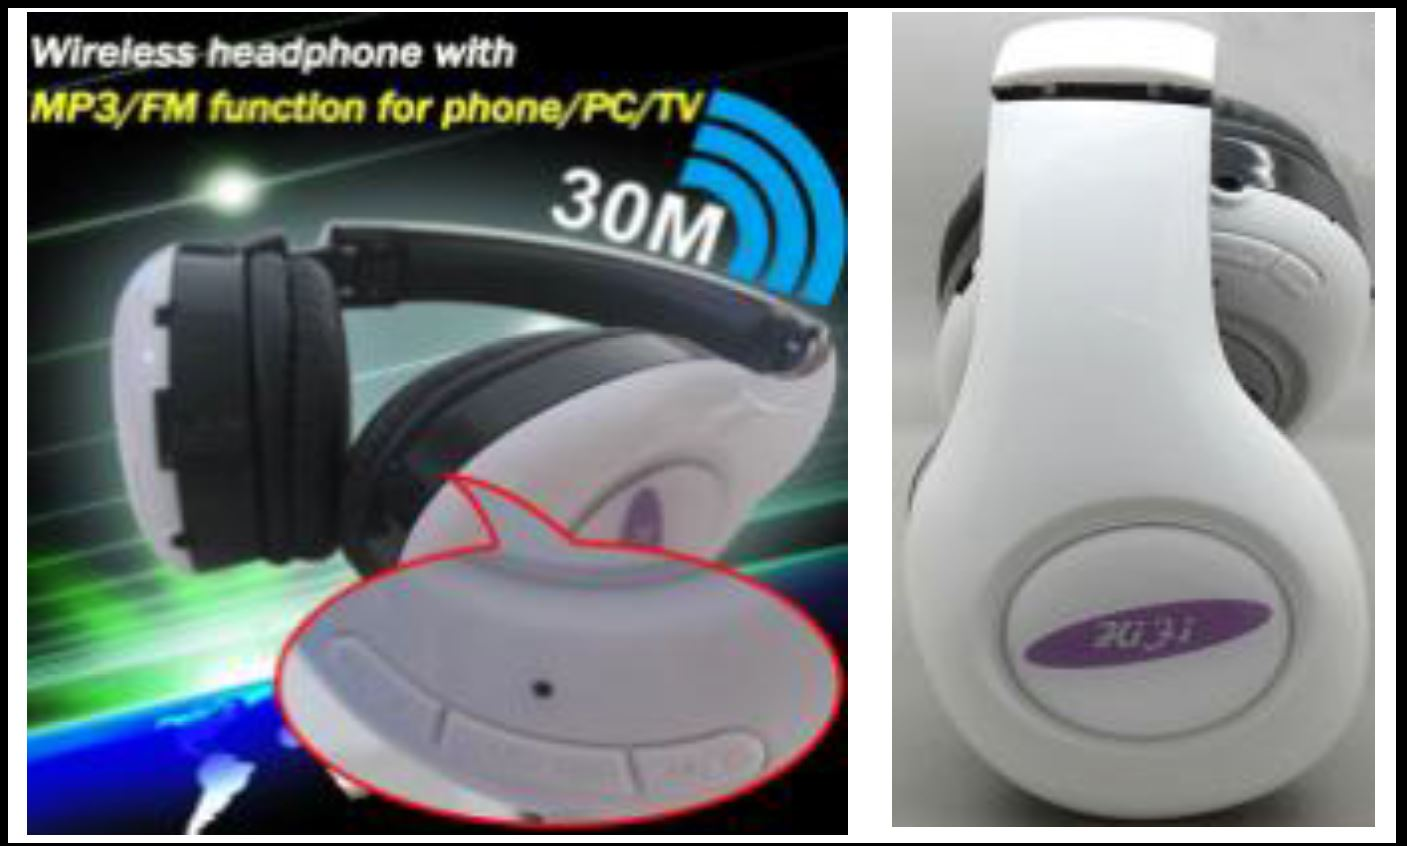 Wireless headphone with MP3/FM function for TV/tablet/mobile phone /PC